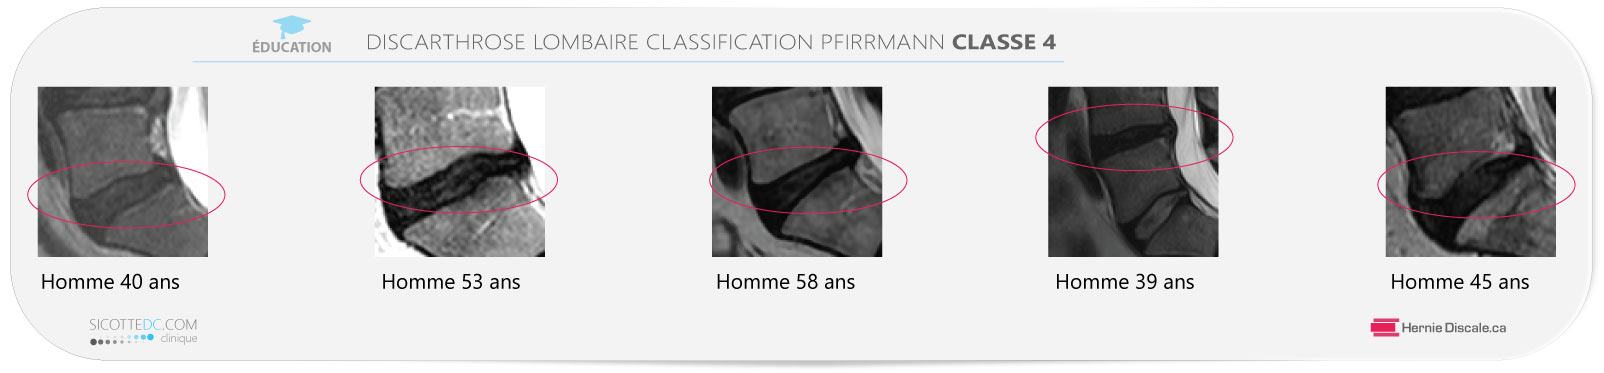 Example discarthrose lombaire classification Pfirrmann classe 4